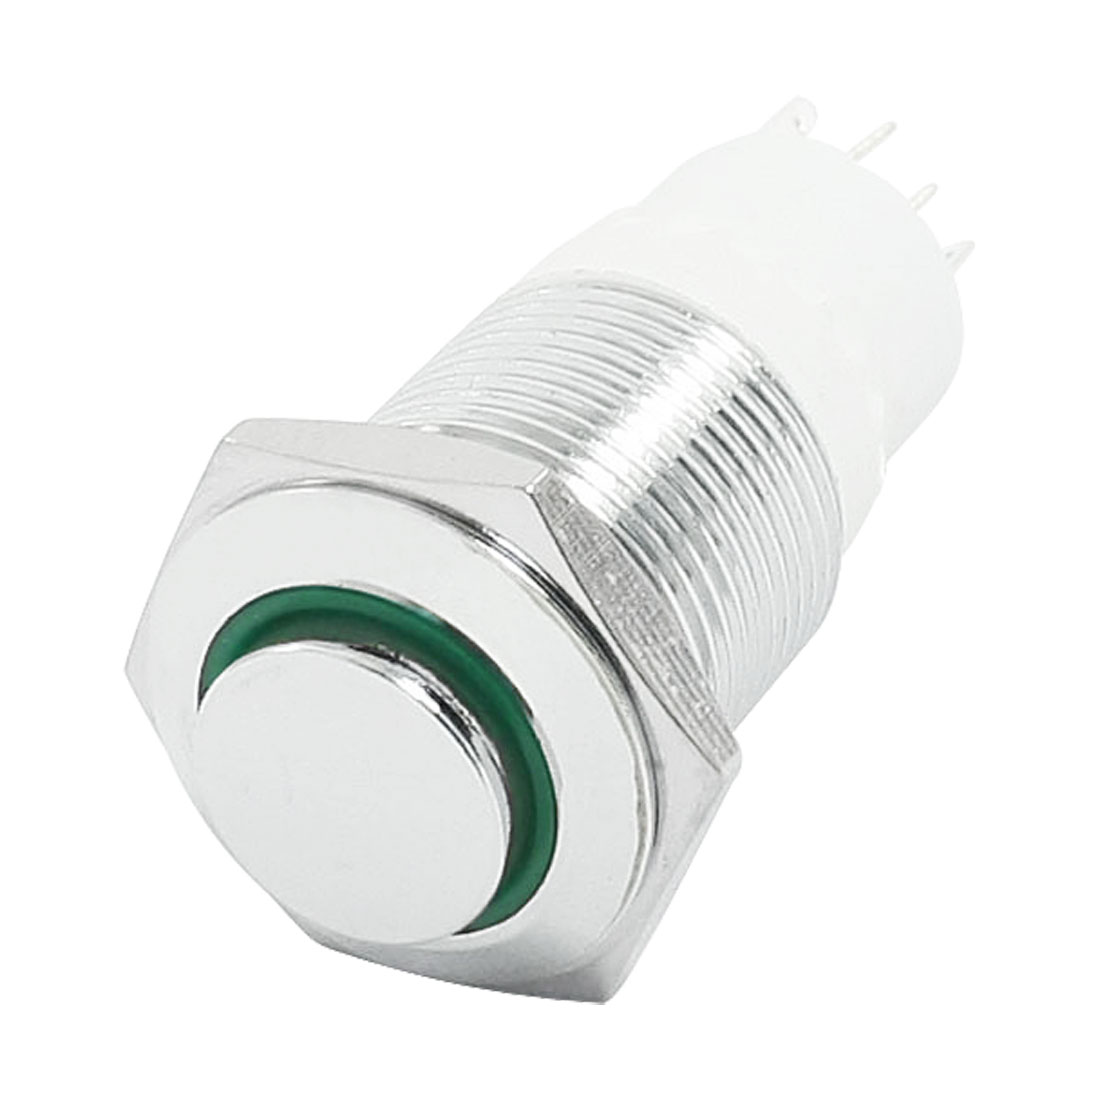 16mm SPDT 1NO 1NC Momentary Green LED Stainless Steel Push Button Switch 6V 3A